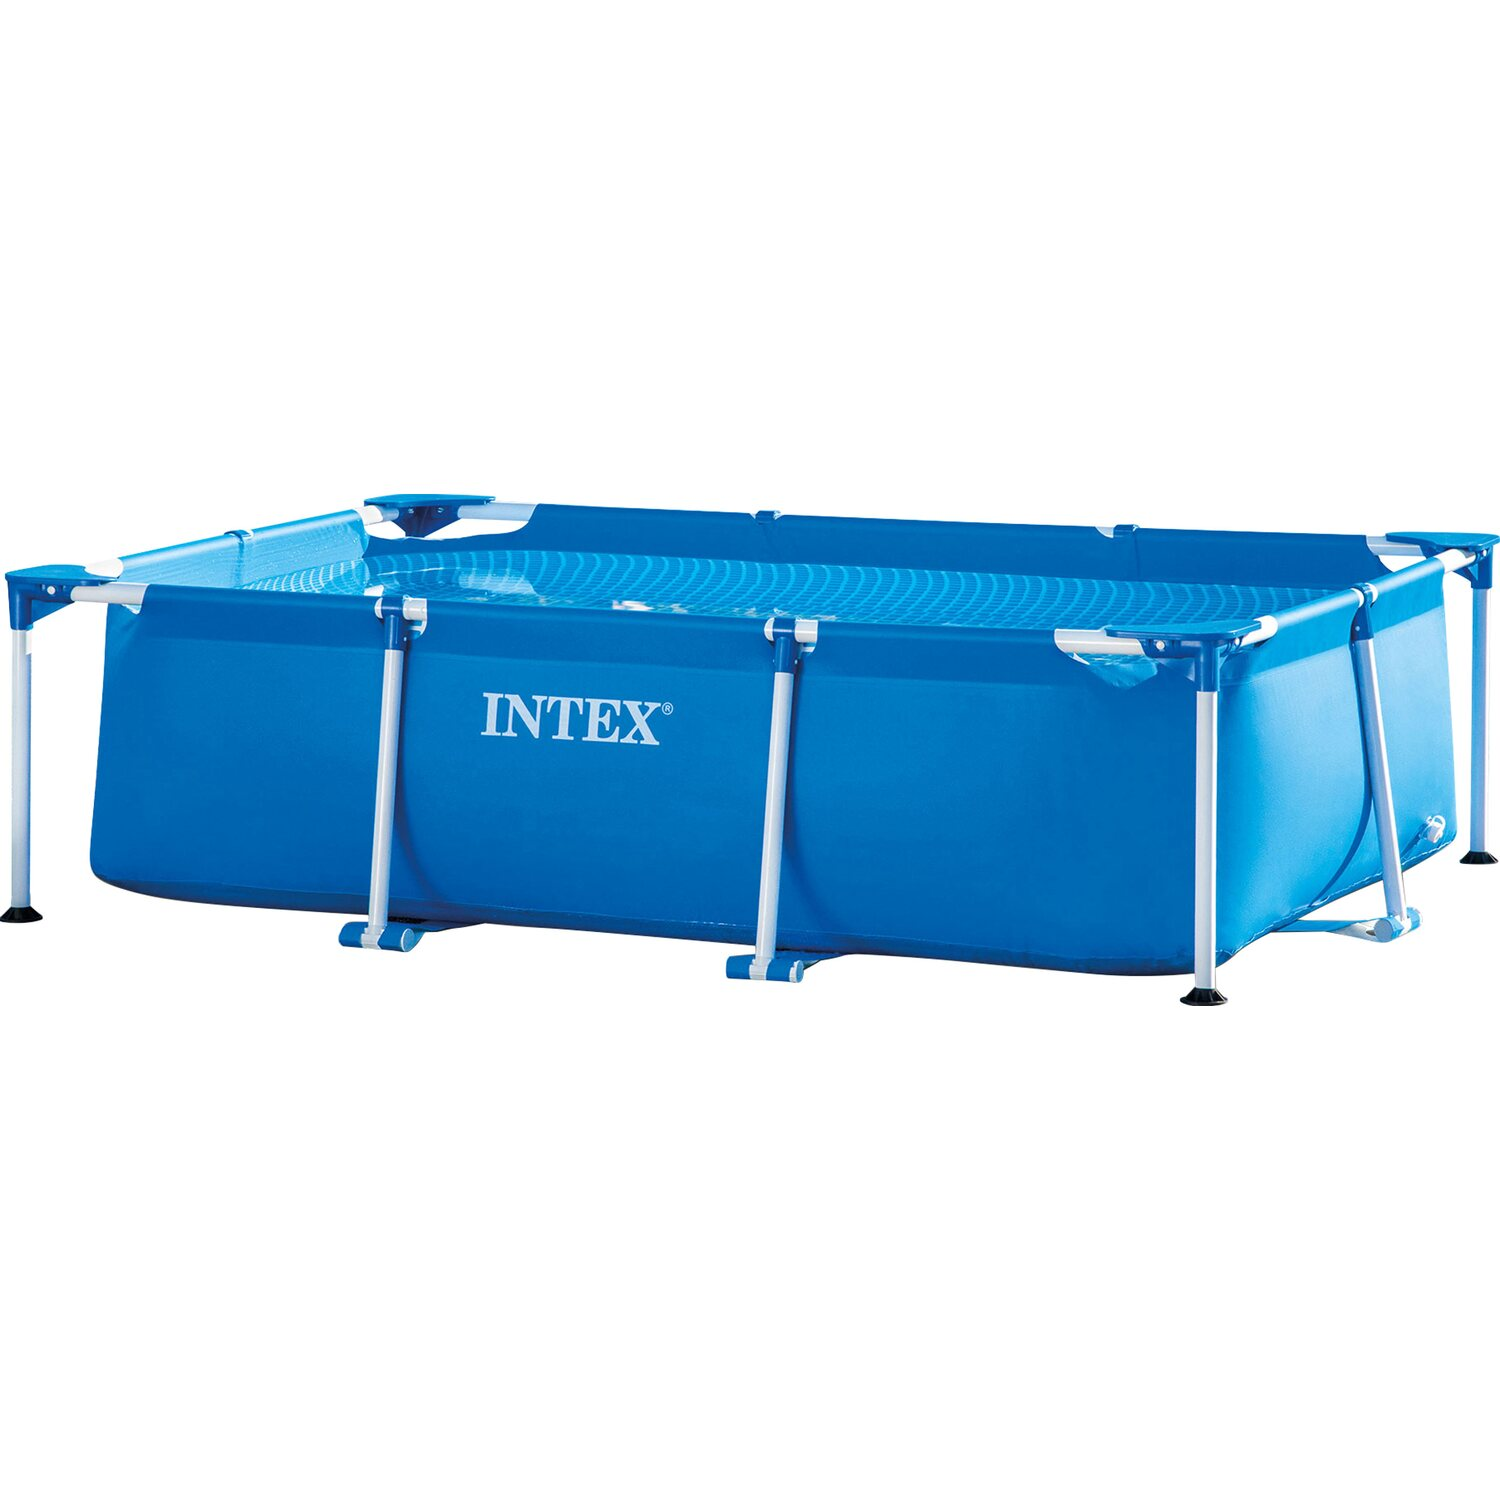 Intex rahmen pool set family 260 cm x 160 cm x 65 cm for Obi pool set